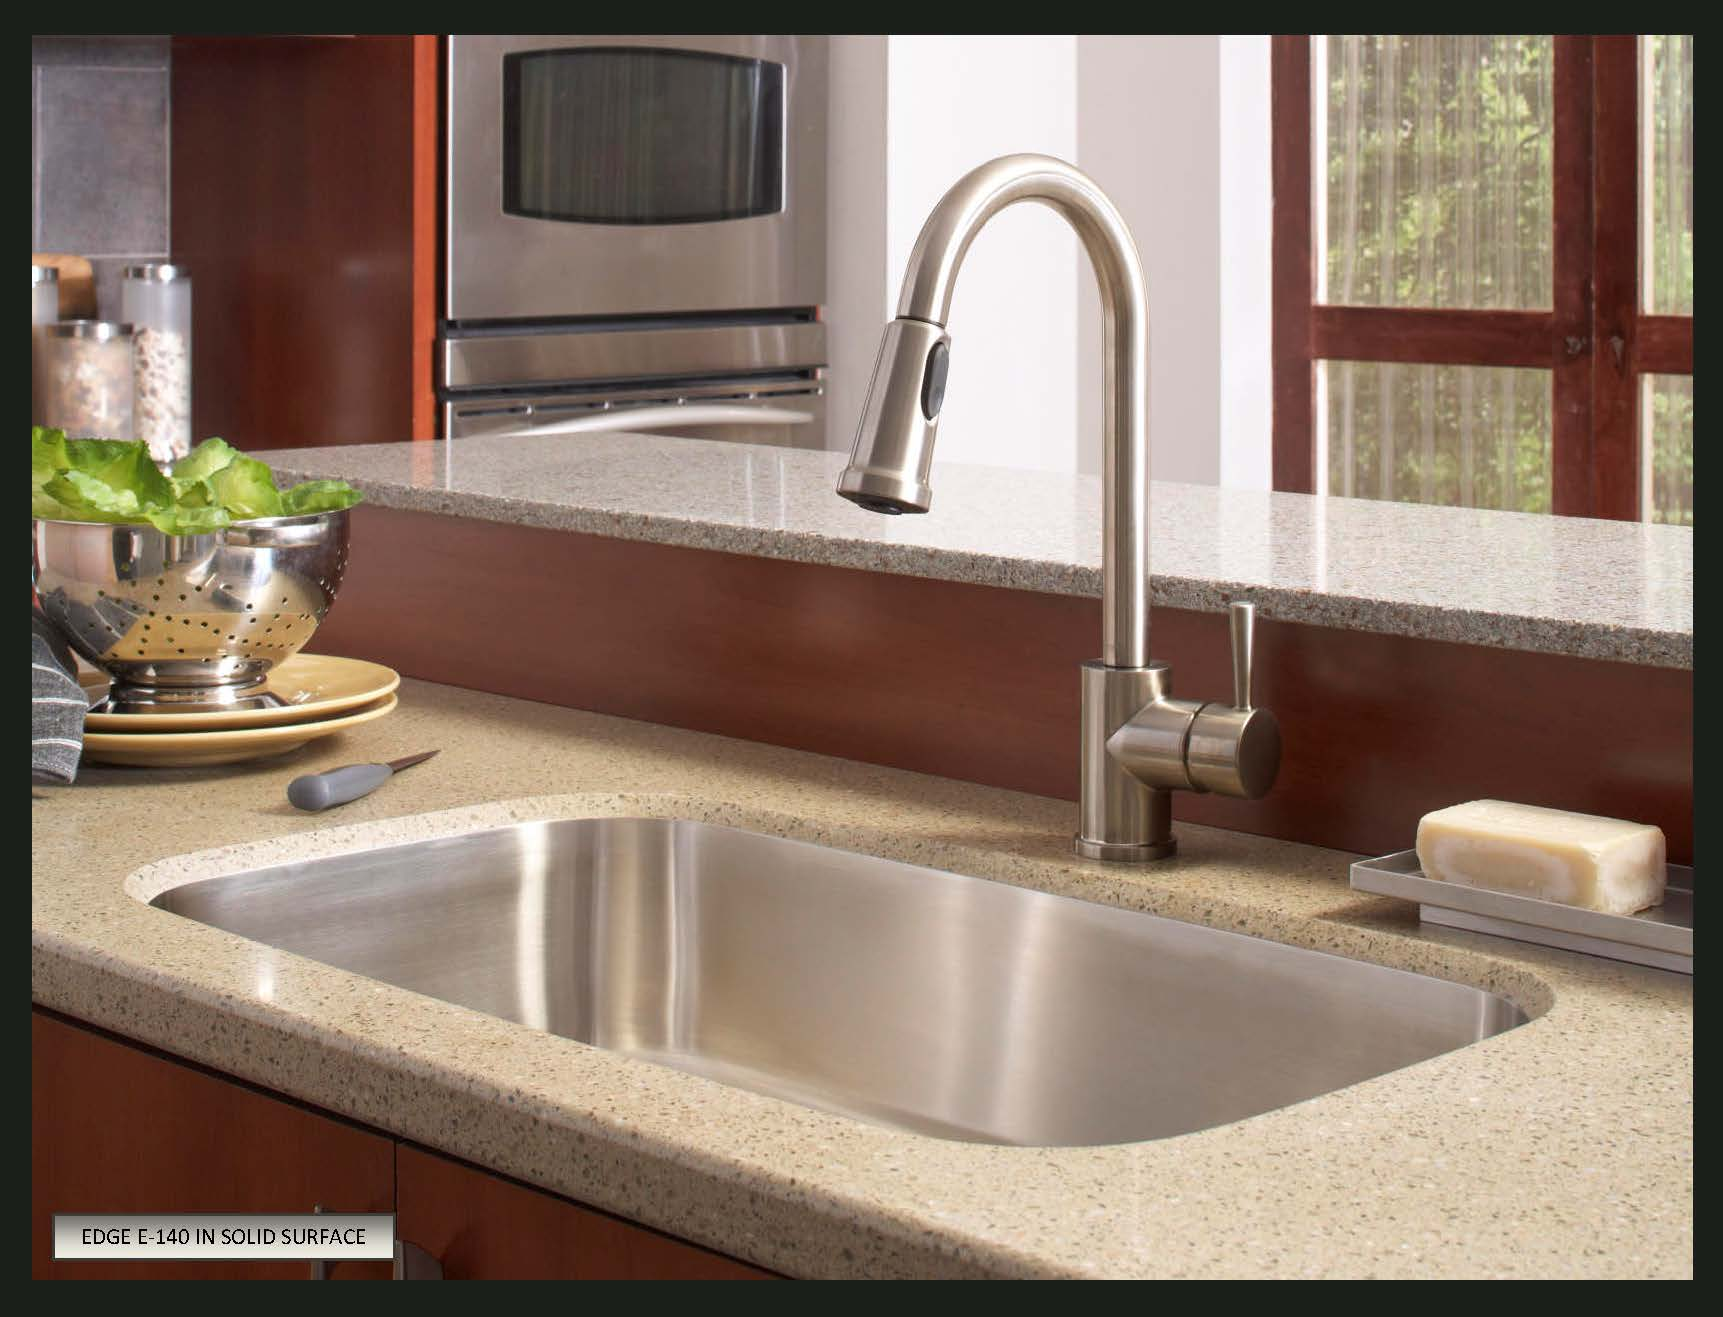 Granite Kitchen Sinks Undermount How To Choose A Sink For Solid Surface Countertops Solidsurface